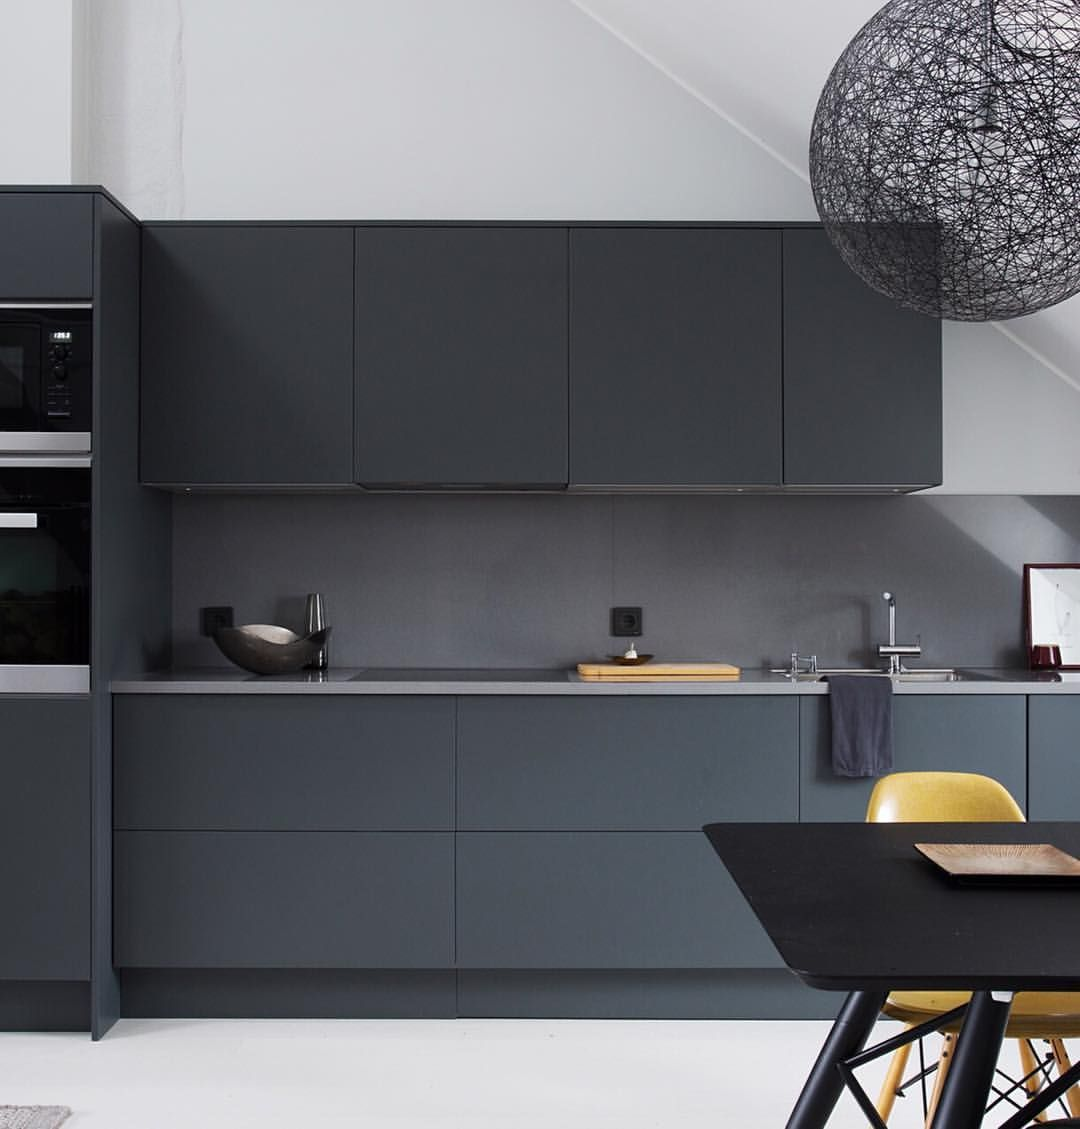 Kitchen Furniture Black Friday: This Kitchen Is One Of Our Favorites Right Now! New